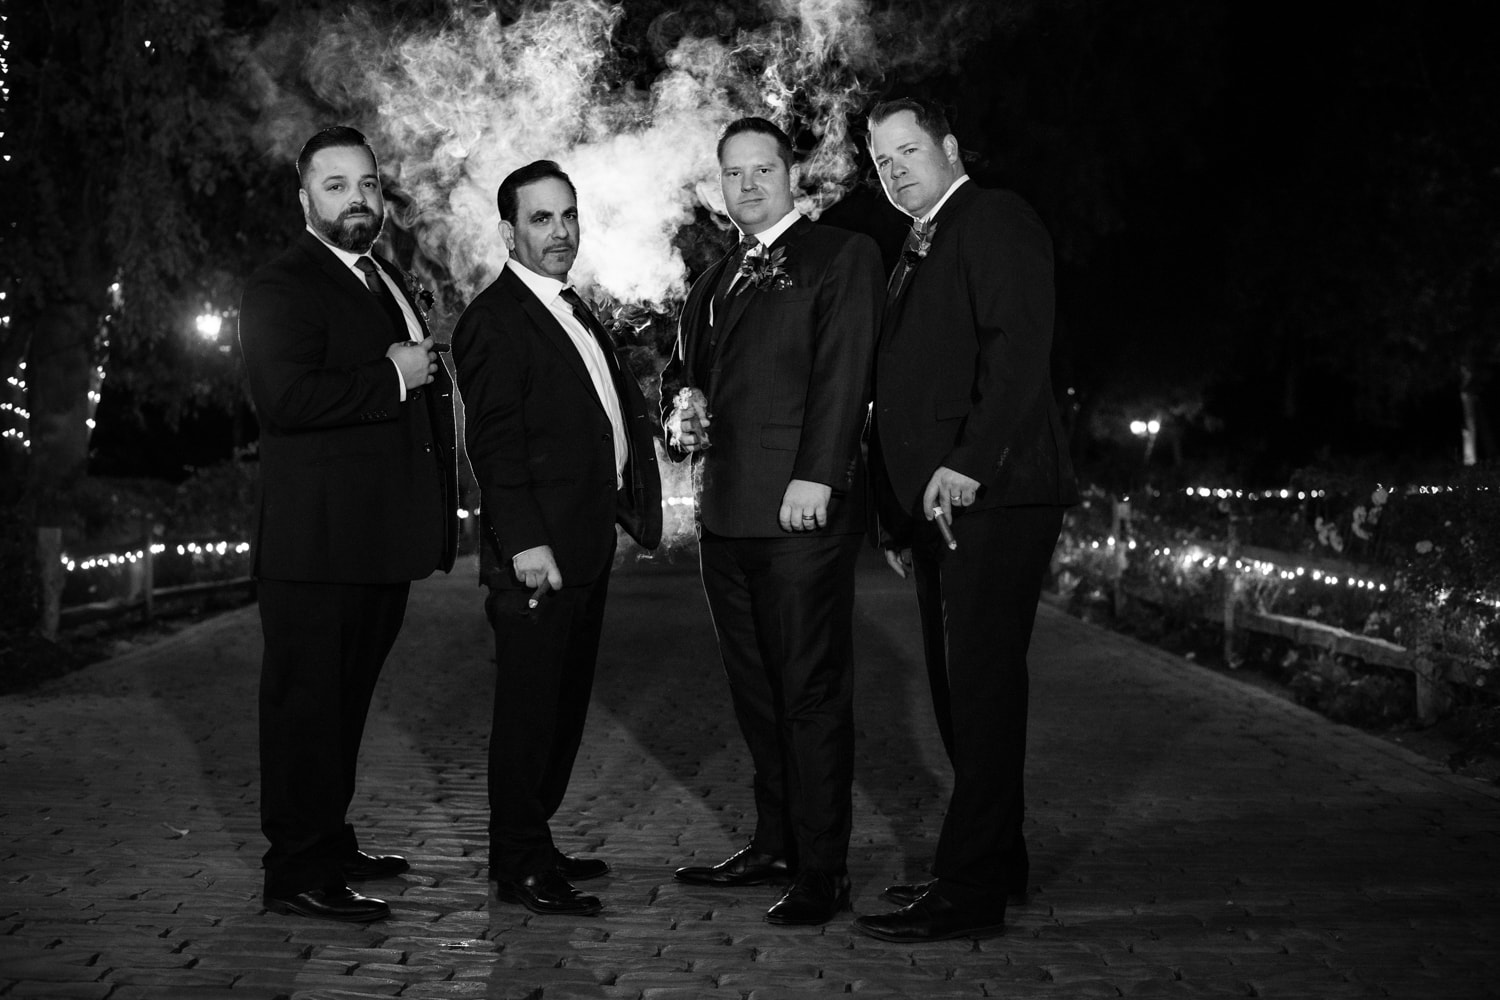 Groom and groomsmen smoking cigars at a San Diego wedding.